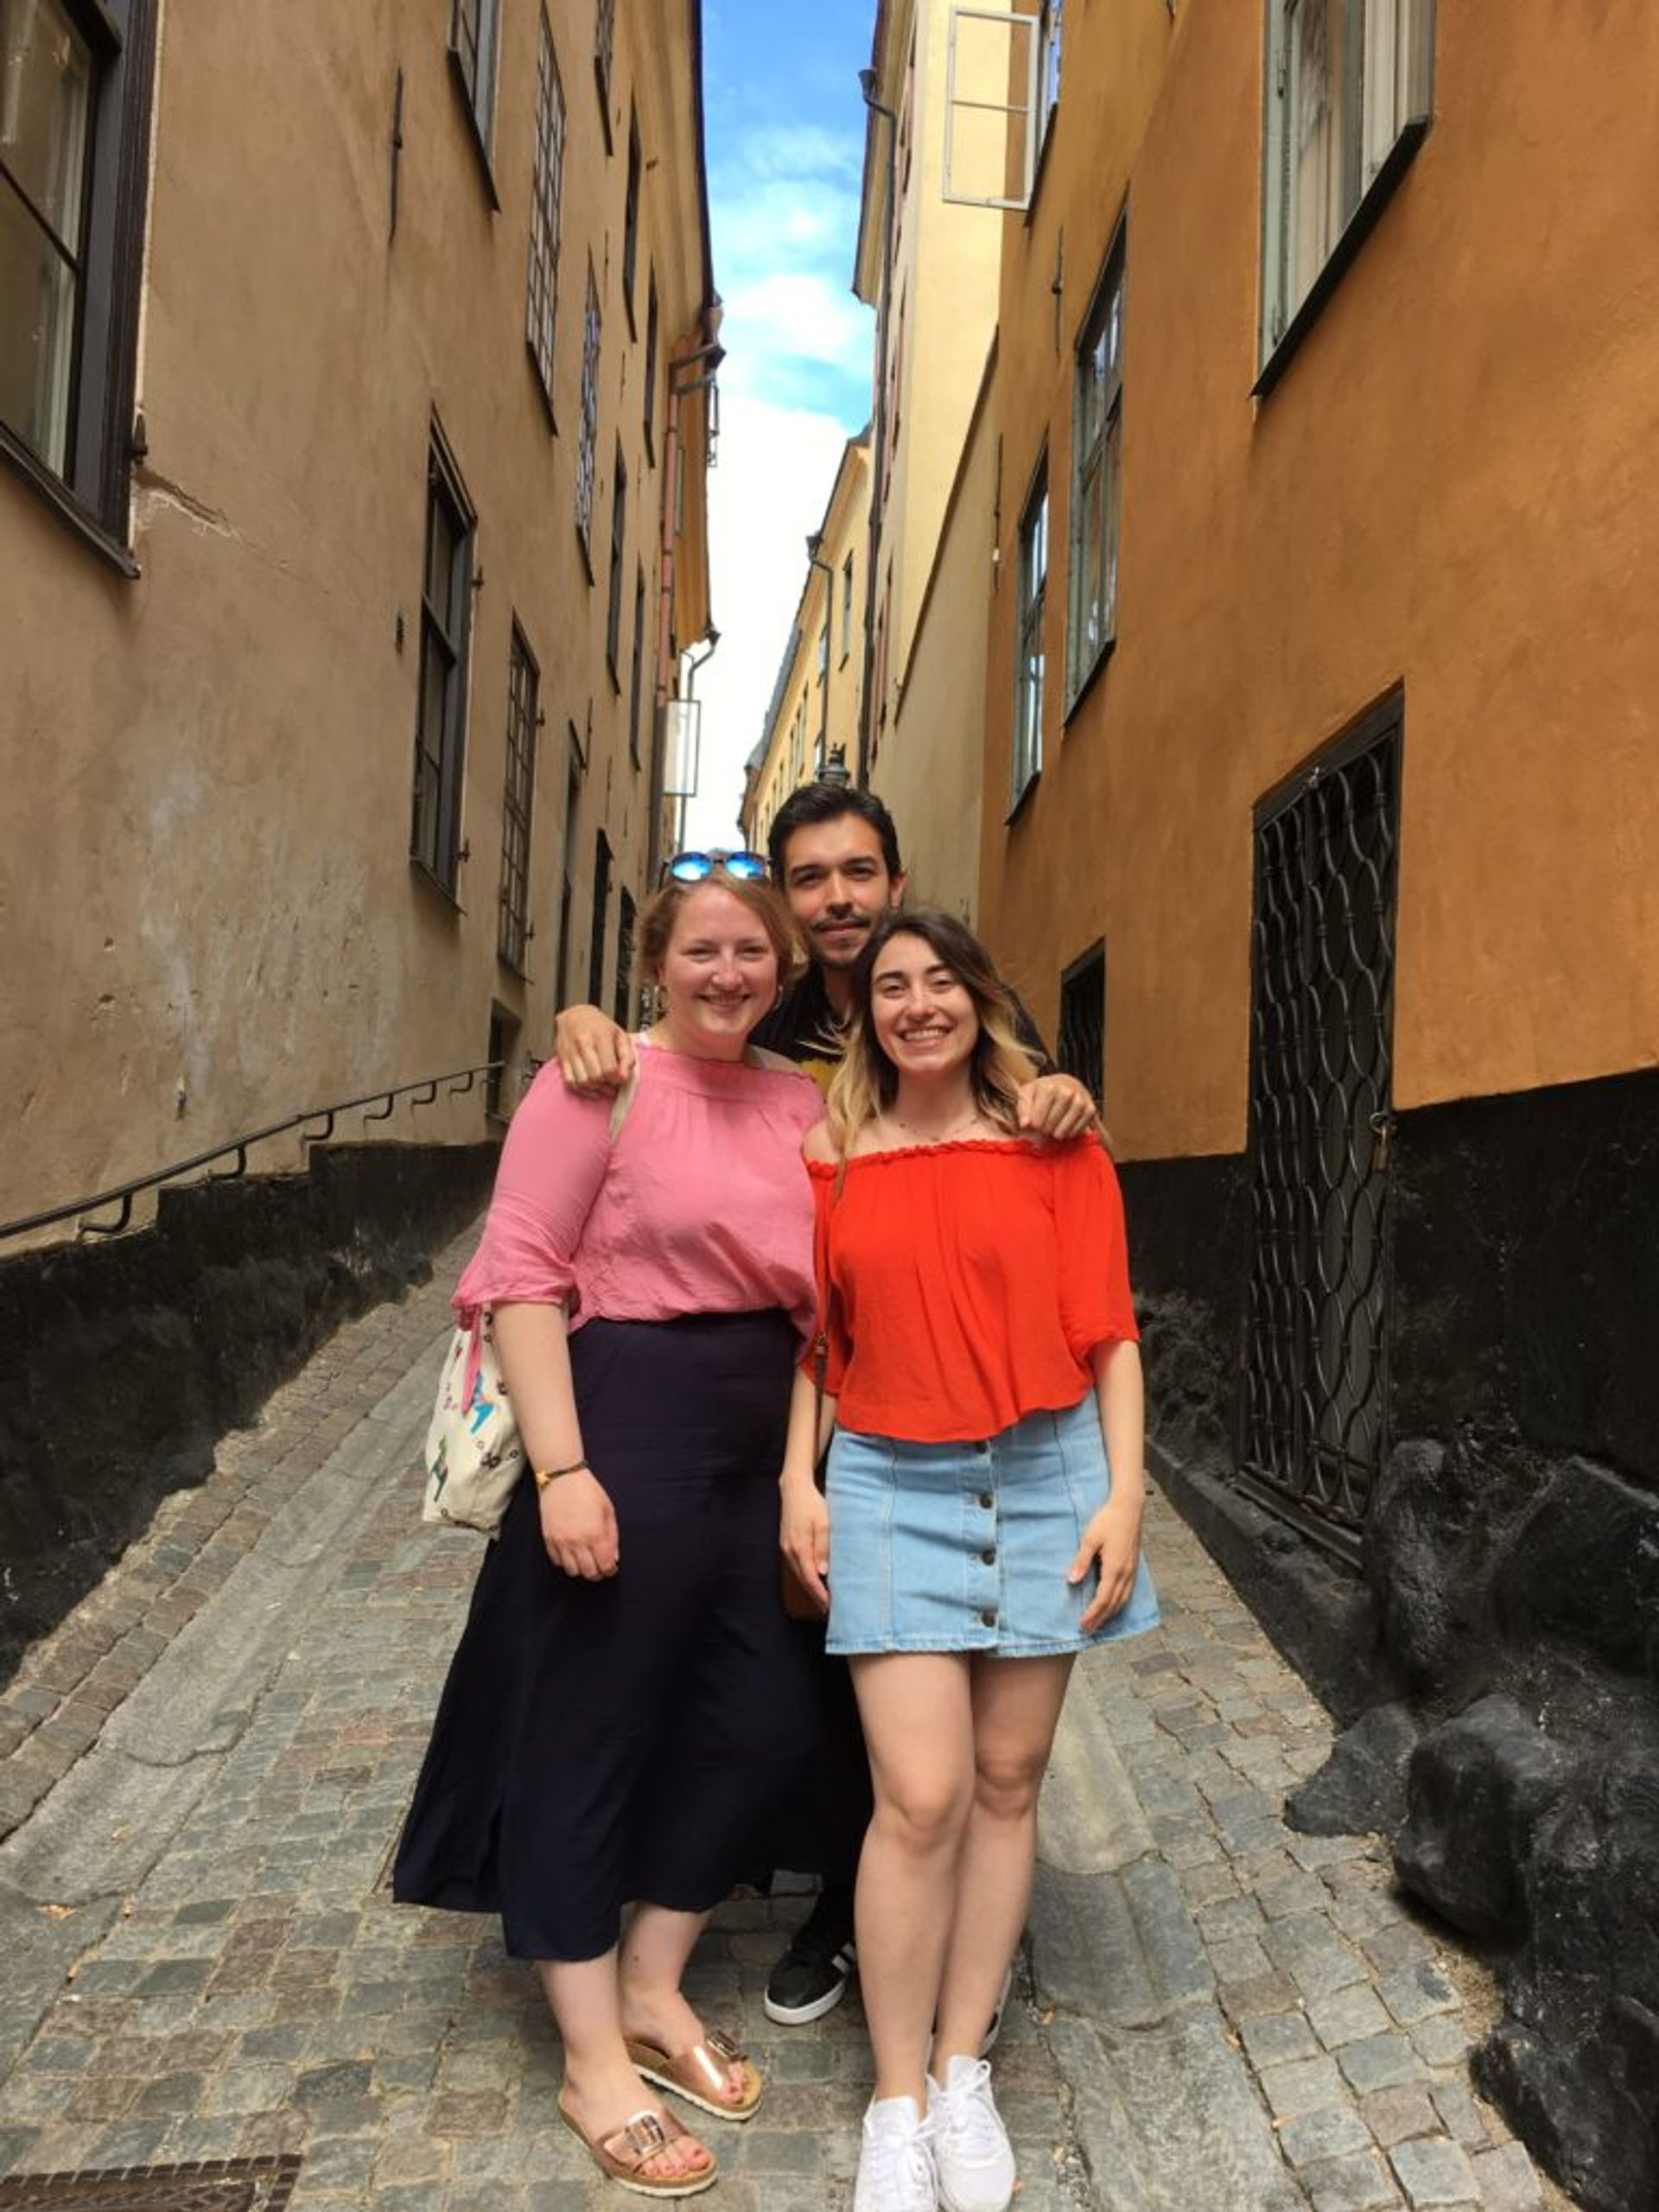 Hazal and two friends, Katharina and Daniel, standing close together on a cobbled street in Stockholm's Old Town.